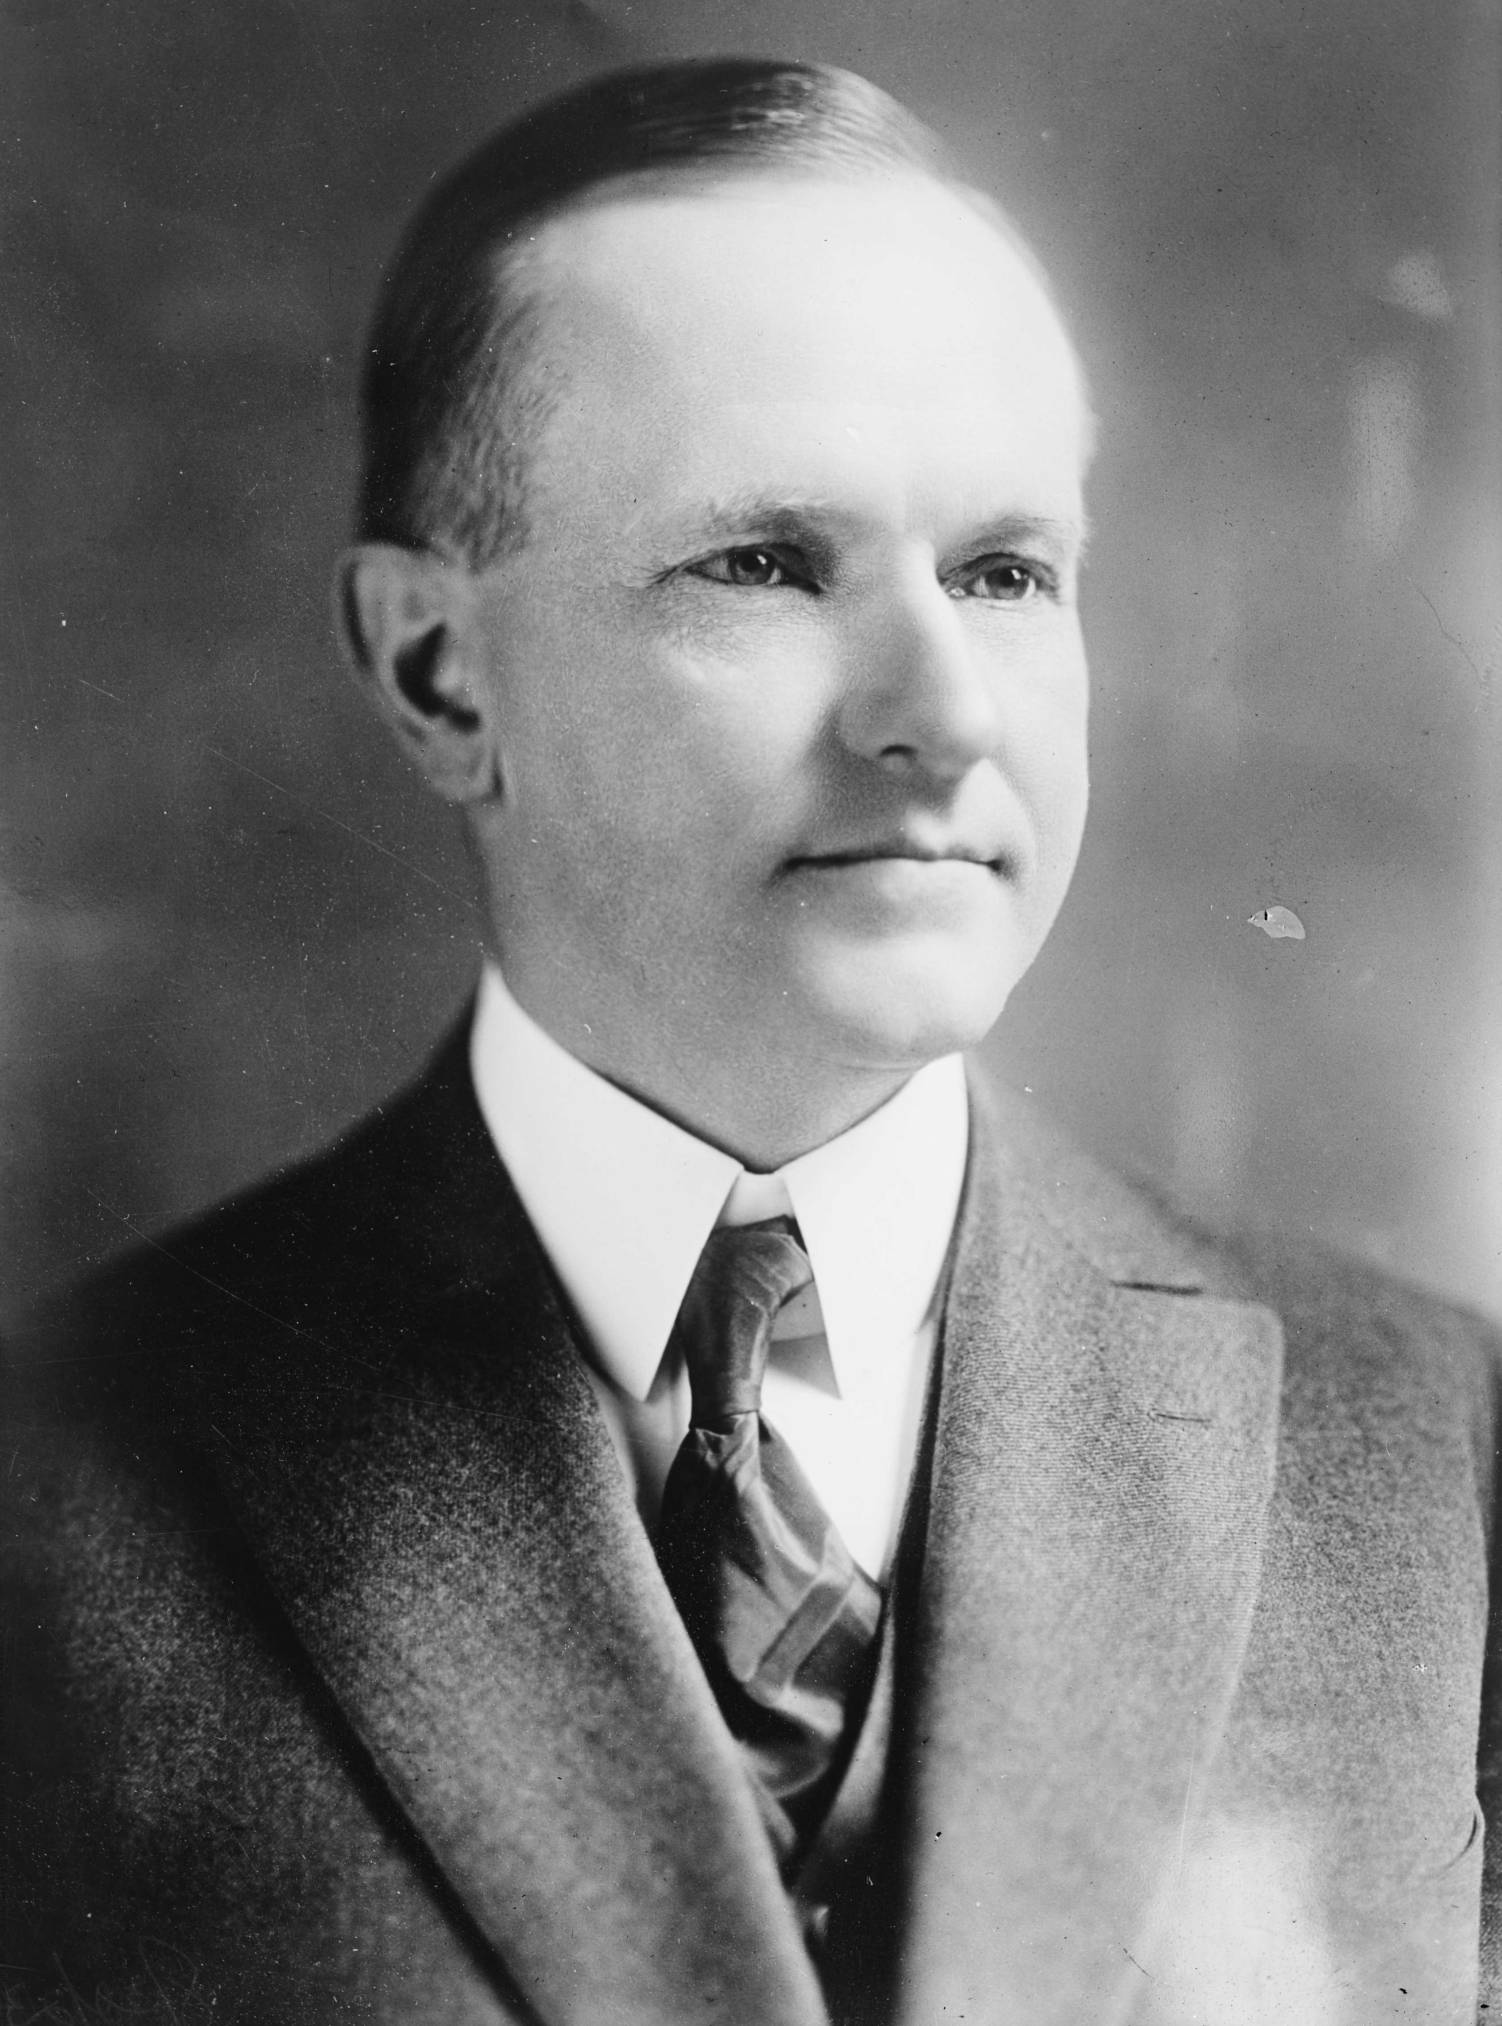 John_Calvin_Coolidge,_Bain_bw_photo_portrait